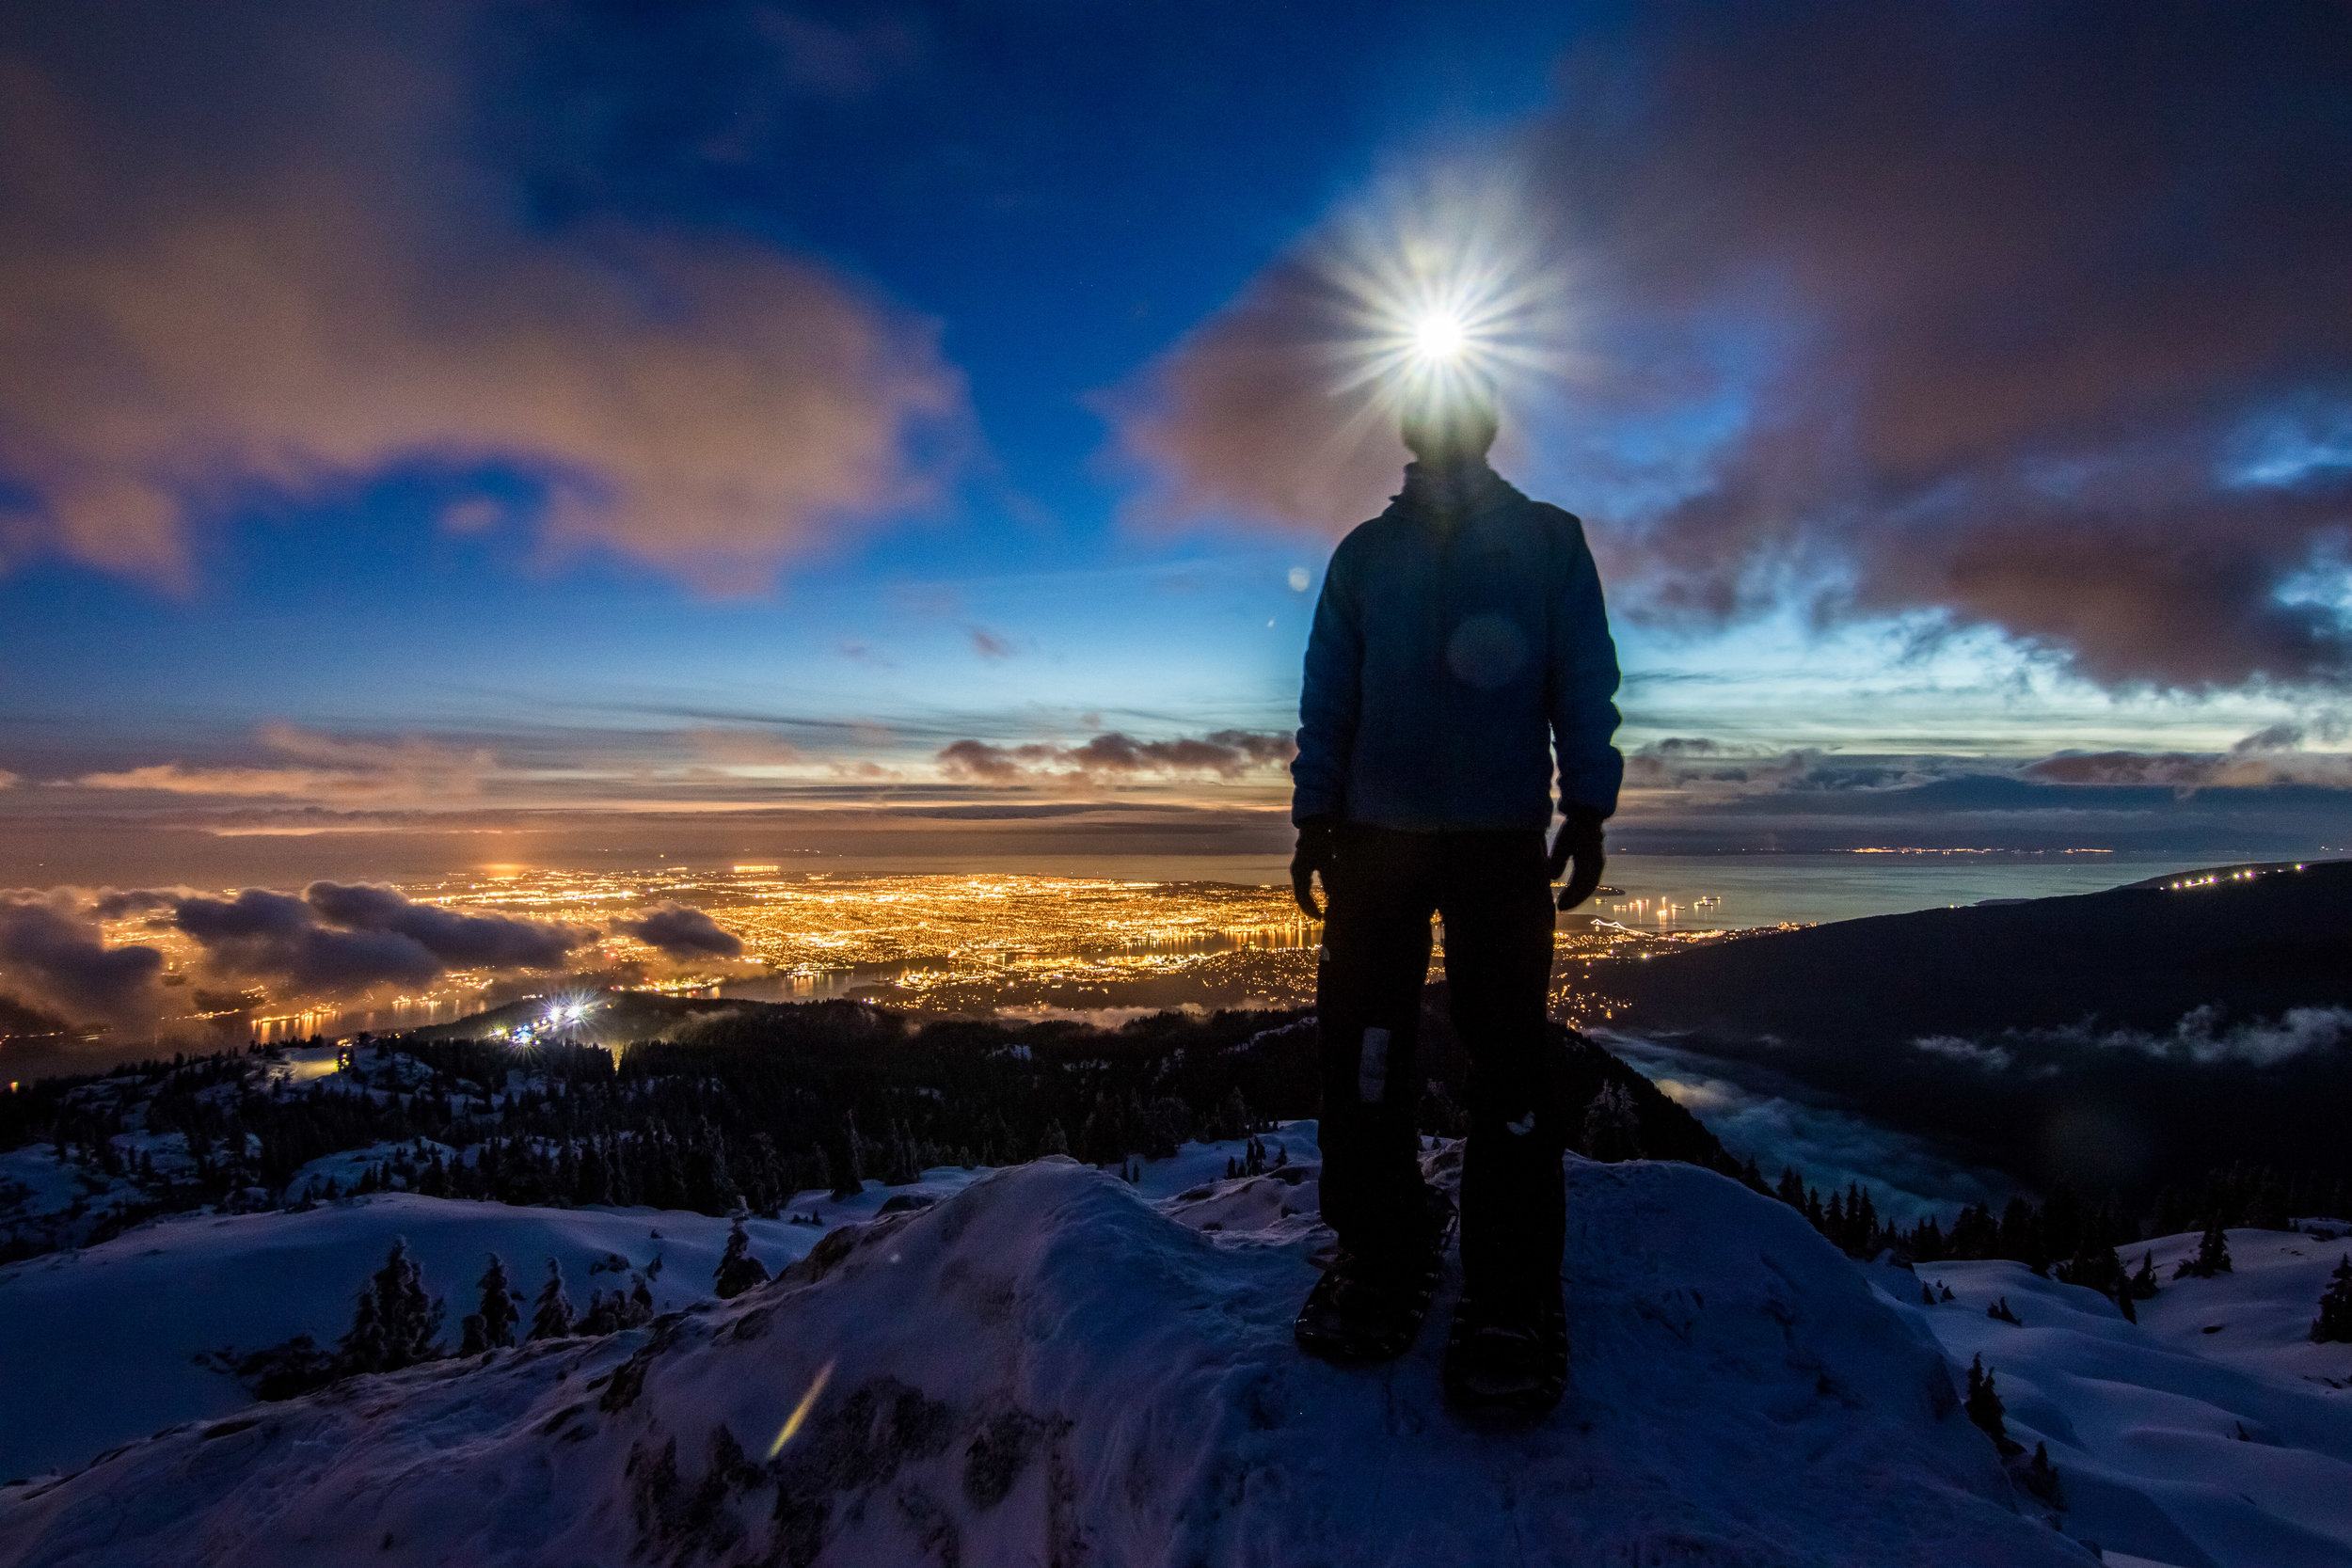 Standing on the First Peak of Mount Seymour, above the lights of Vancouver and into the realm of clouds. Self Portrait